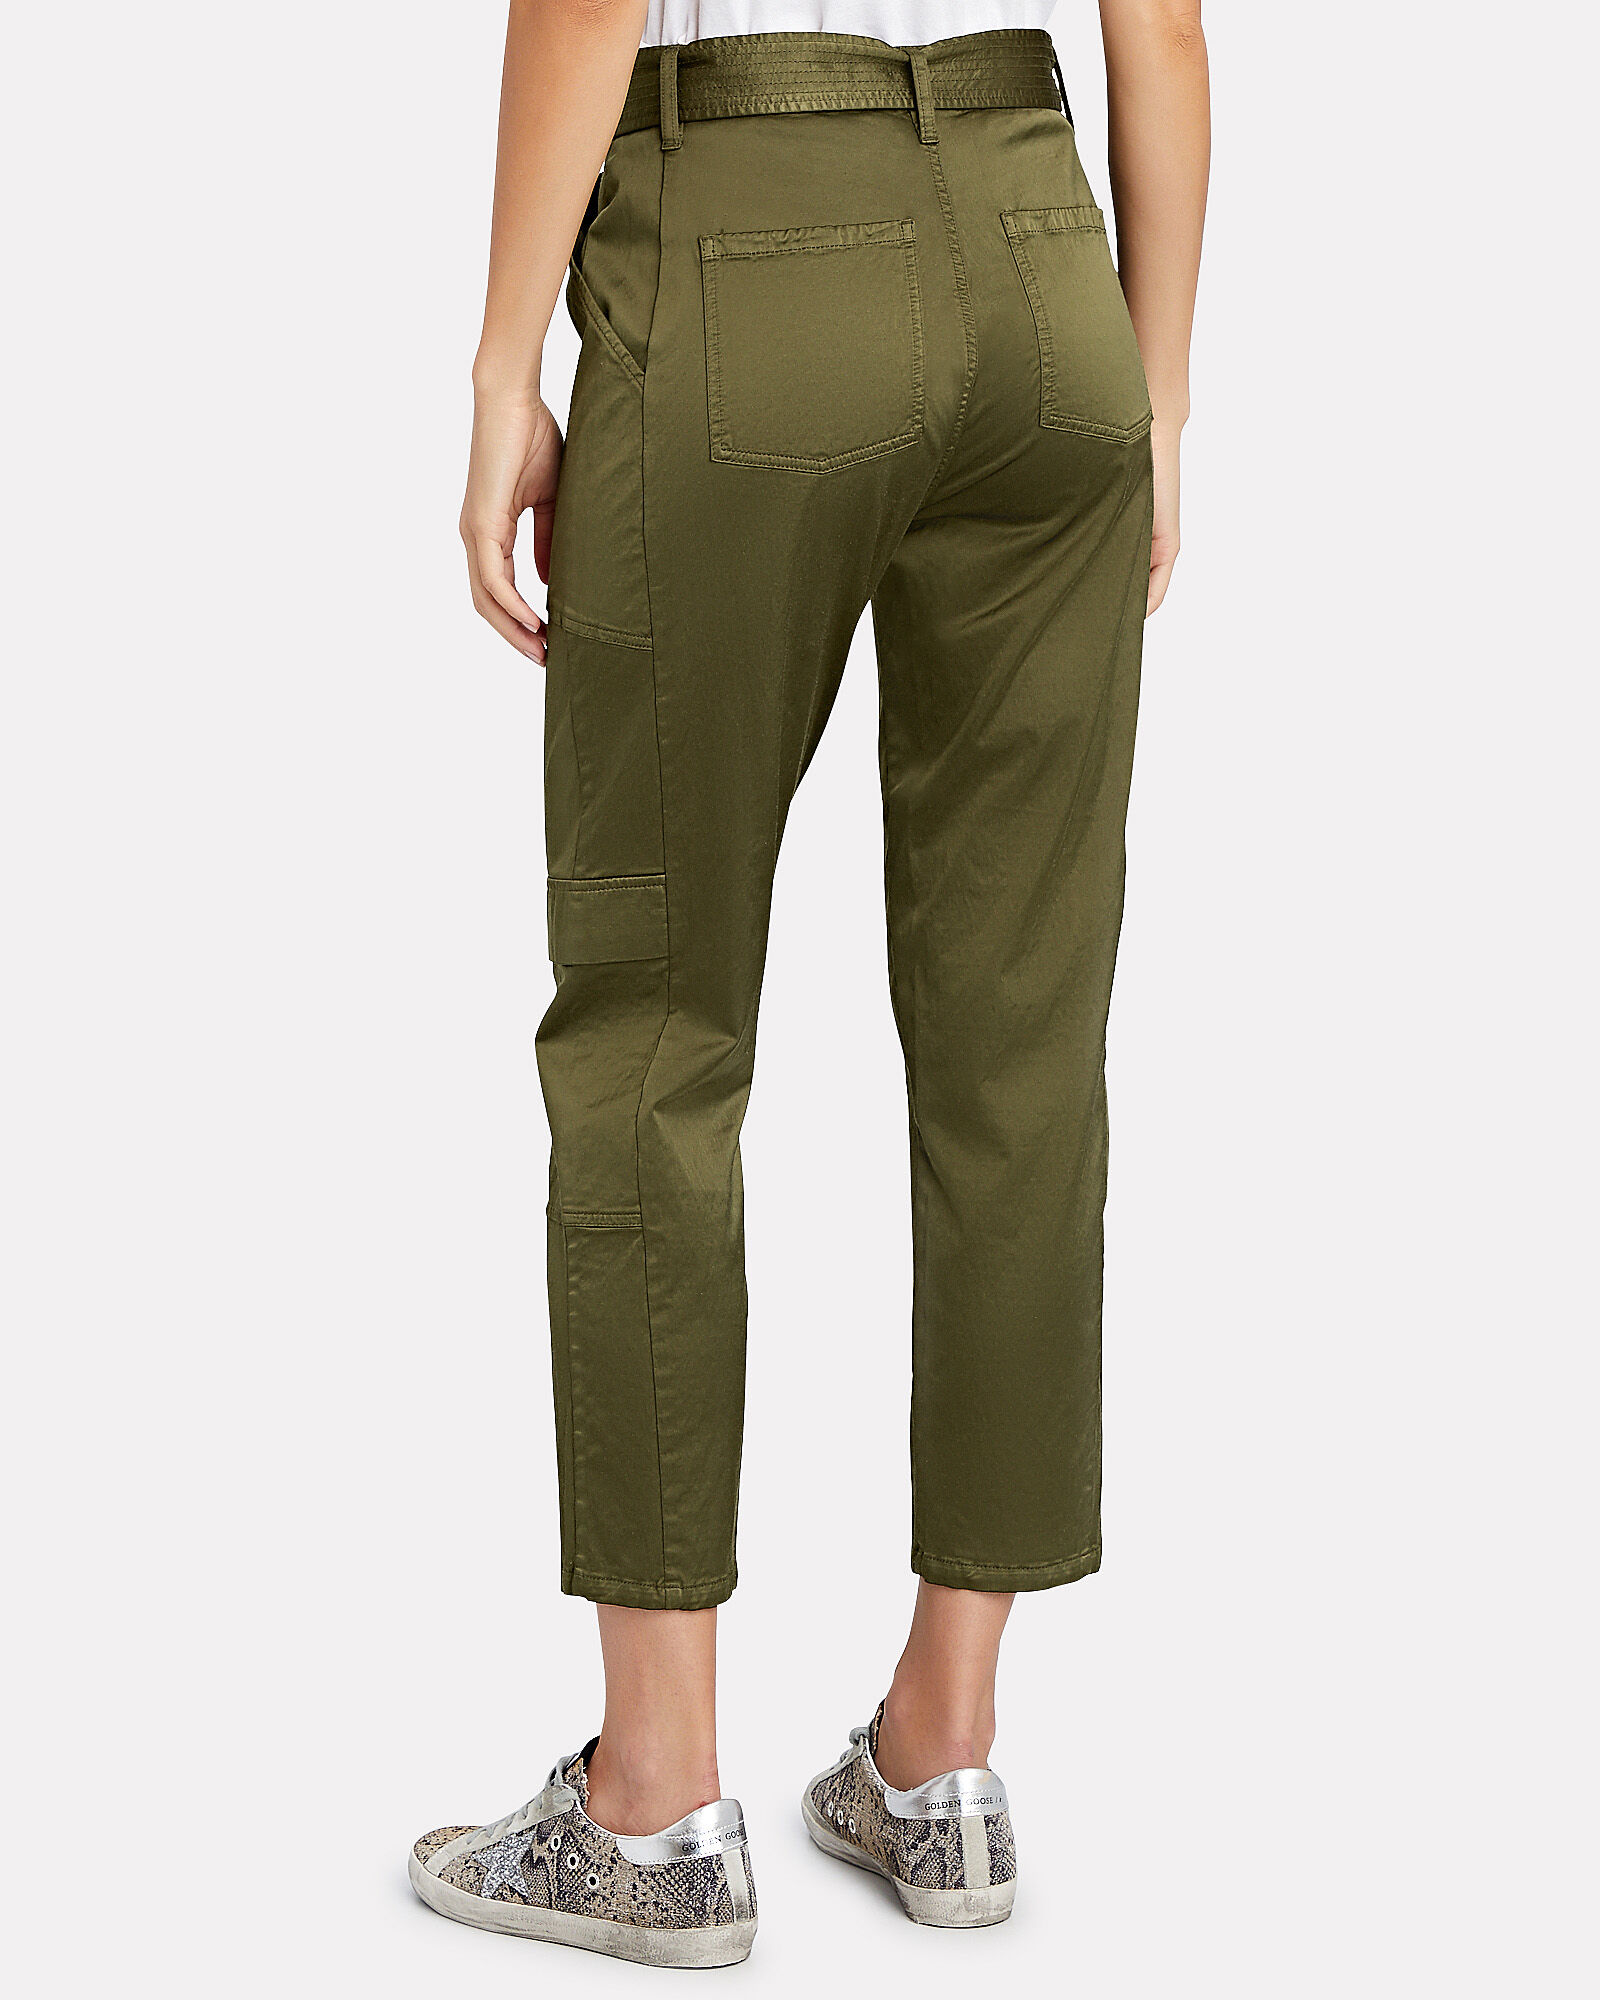 Athena Surplus Cropped Pants, OLIVE/ARMY, hi-res